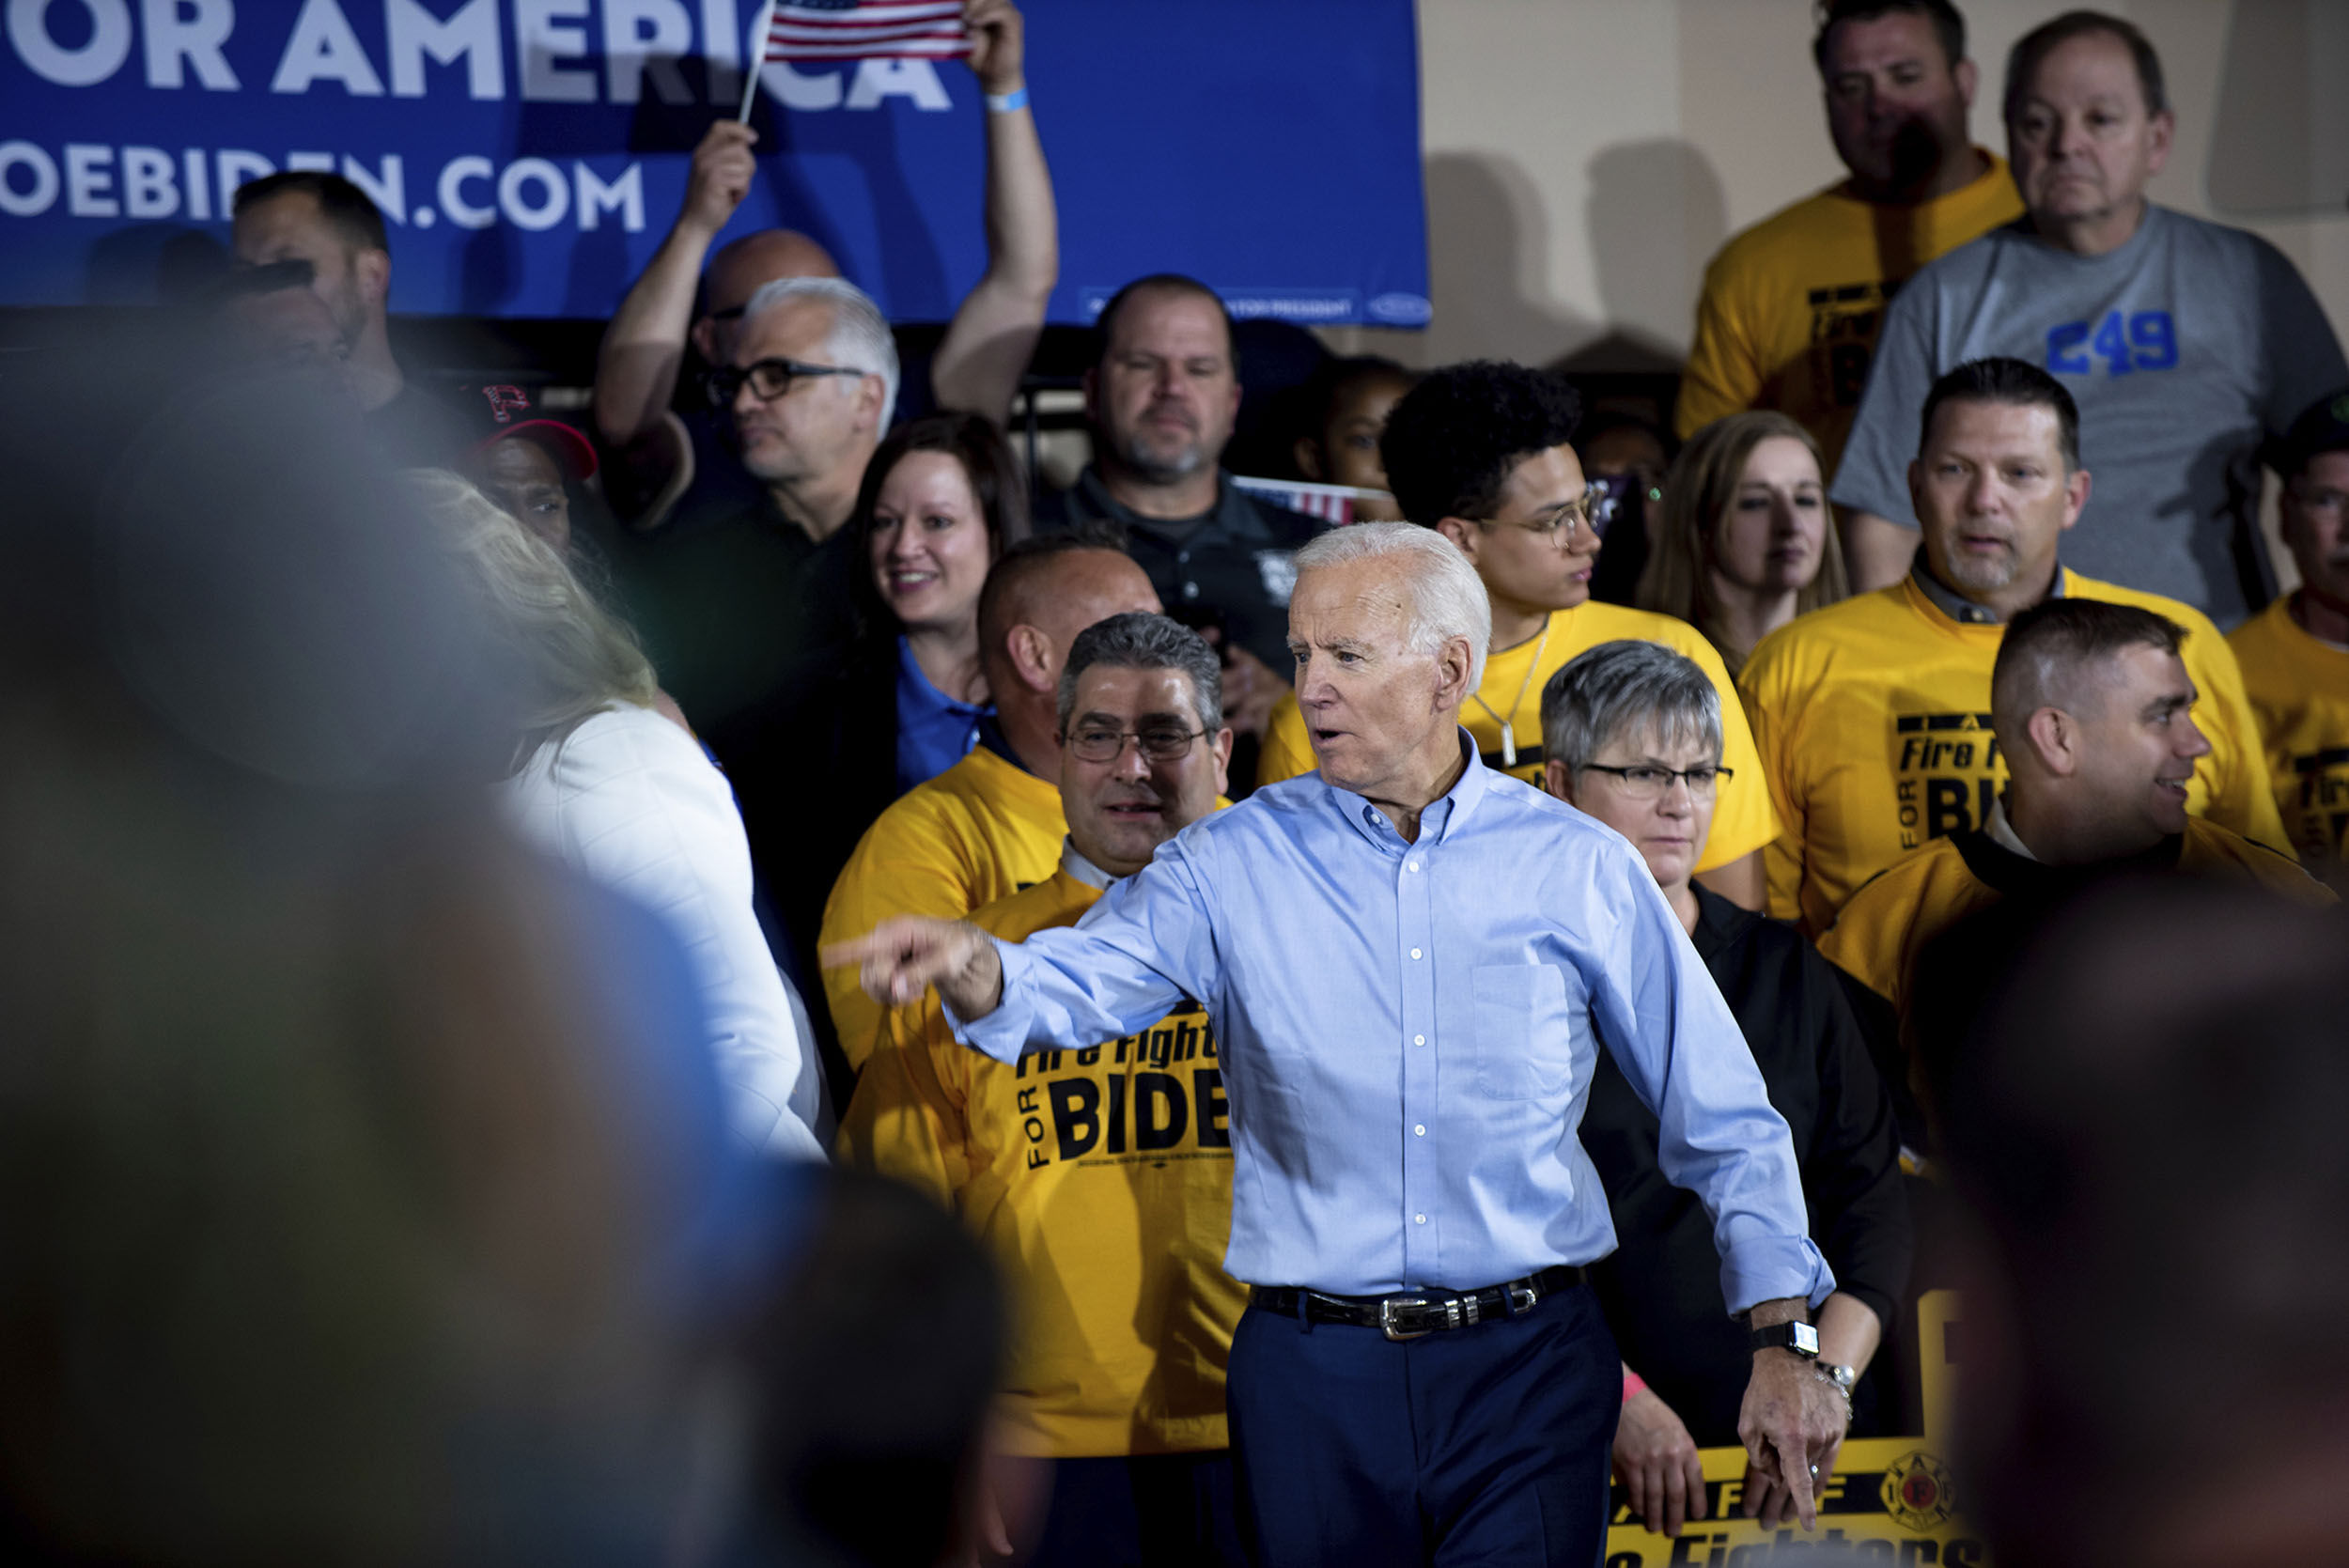 bloomberg.com - Joshua Green - Biden's Nafta Vote Is a Liability in the Rust Belt